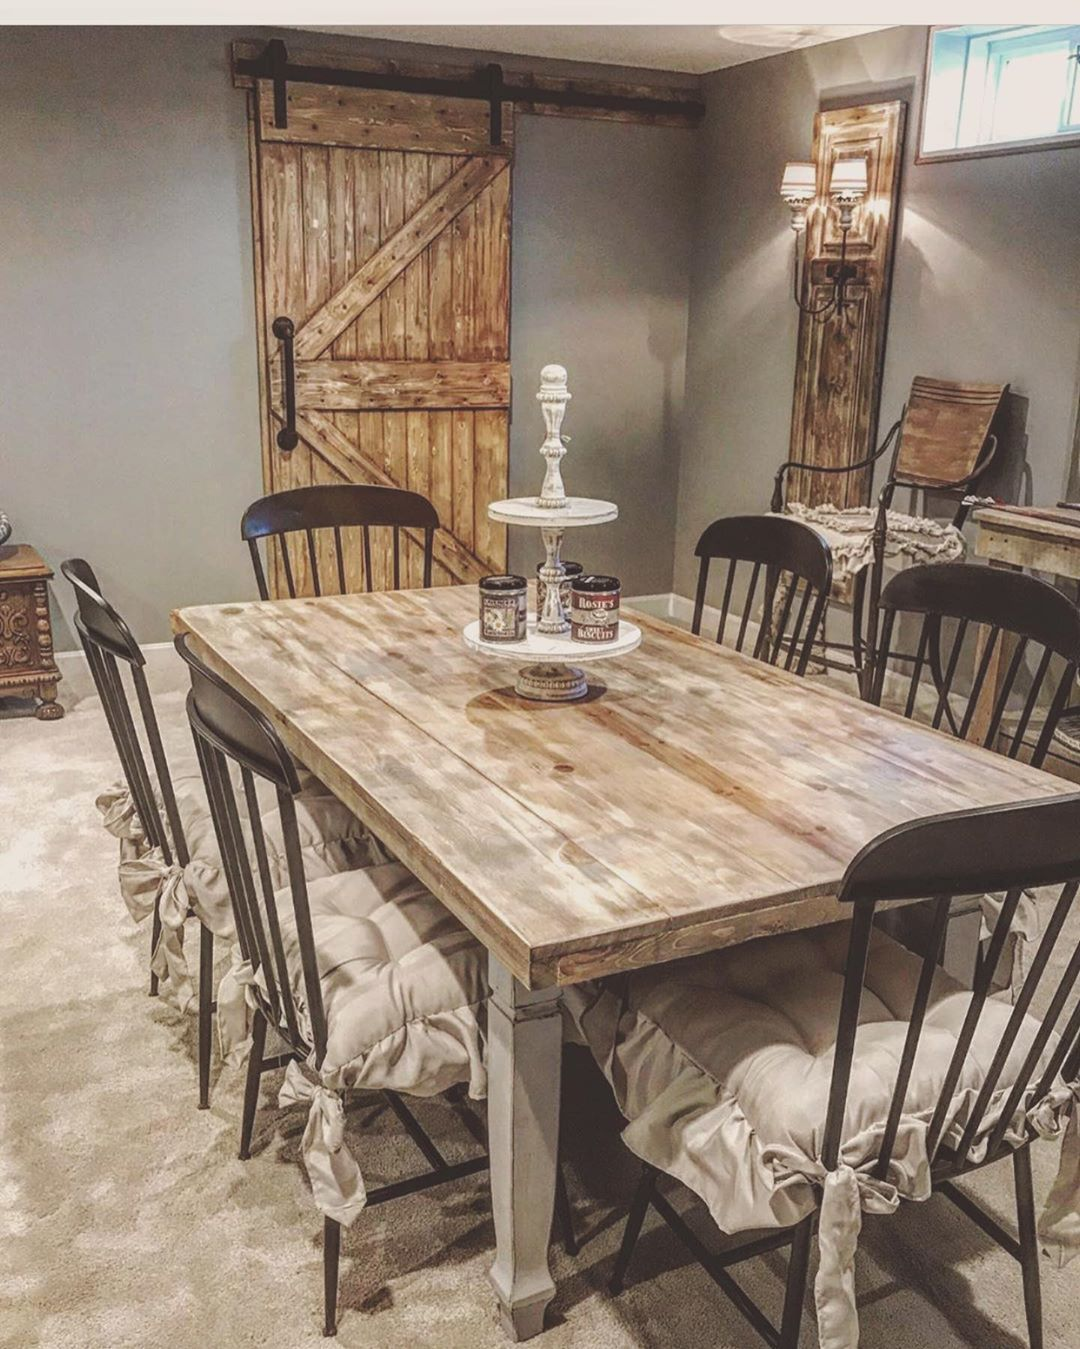 Farmhouse fresh home on instagram yes or no to the the